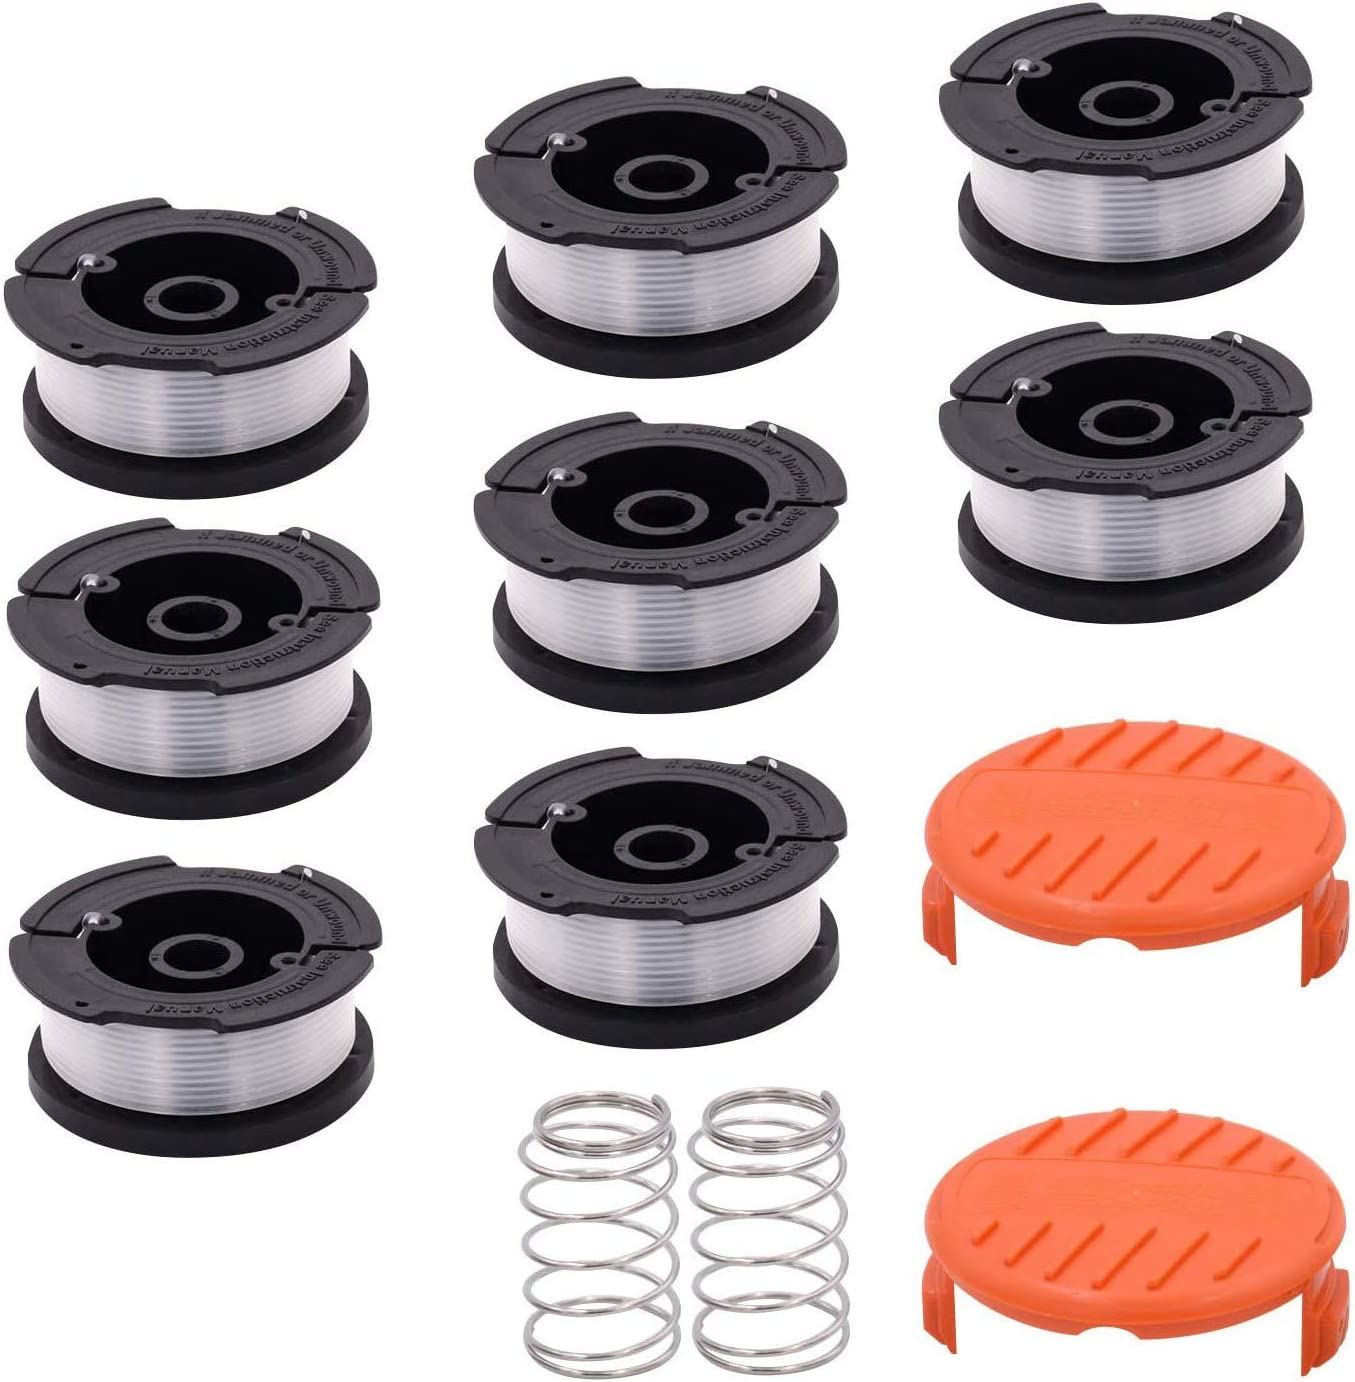 SOKOO Weed Eater Wacker besta510 Home Weed Eater Spool 065 Trimmer line Spool,30ft Autofeed Black and Decker Weed Eater String Spool Trimmer 12-Pack (8 Replacement Spool, 2Trimmer Cap, 2Spring)